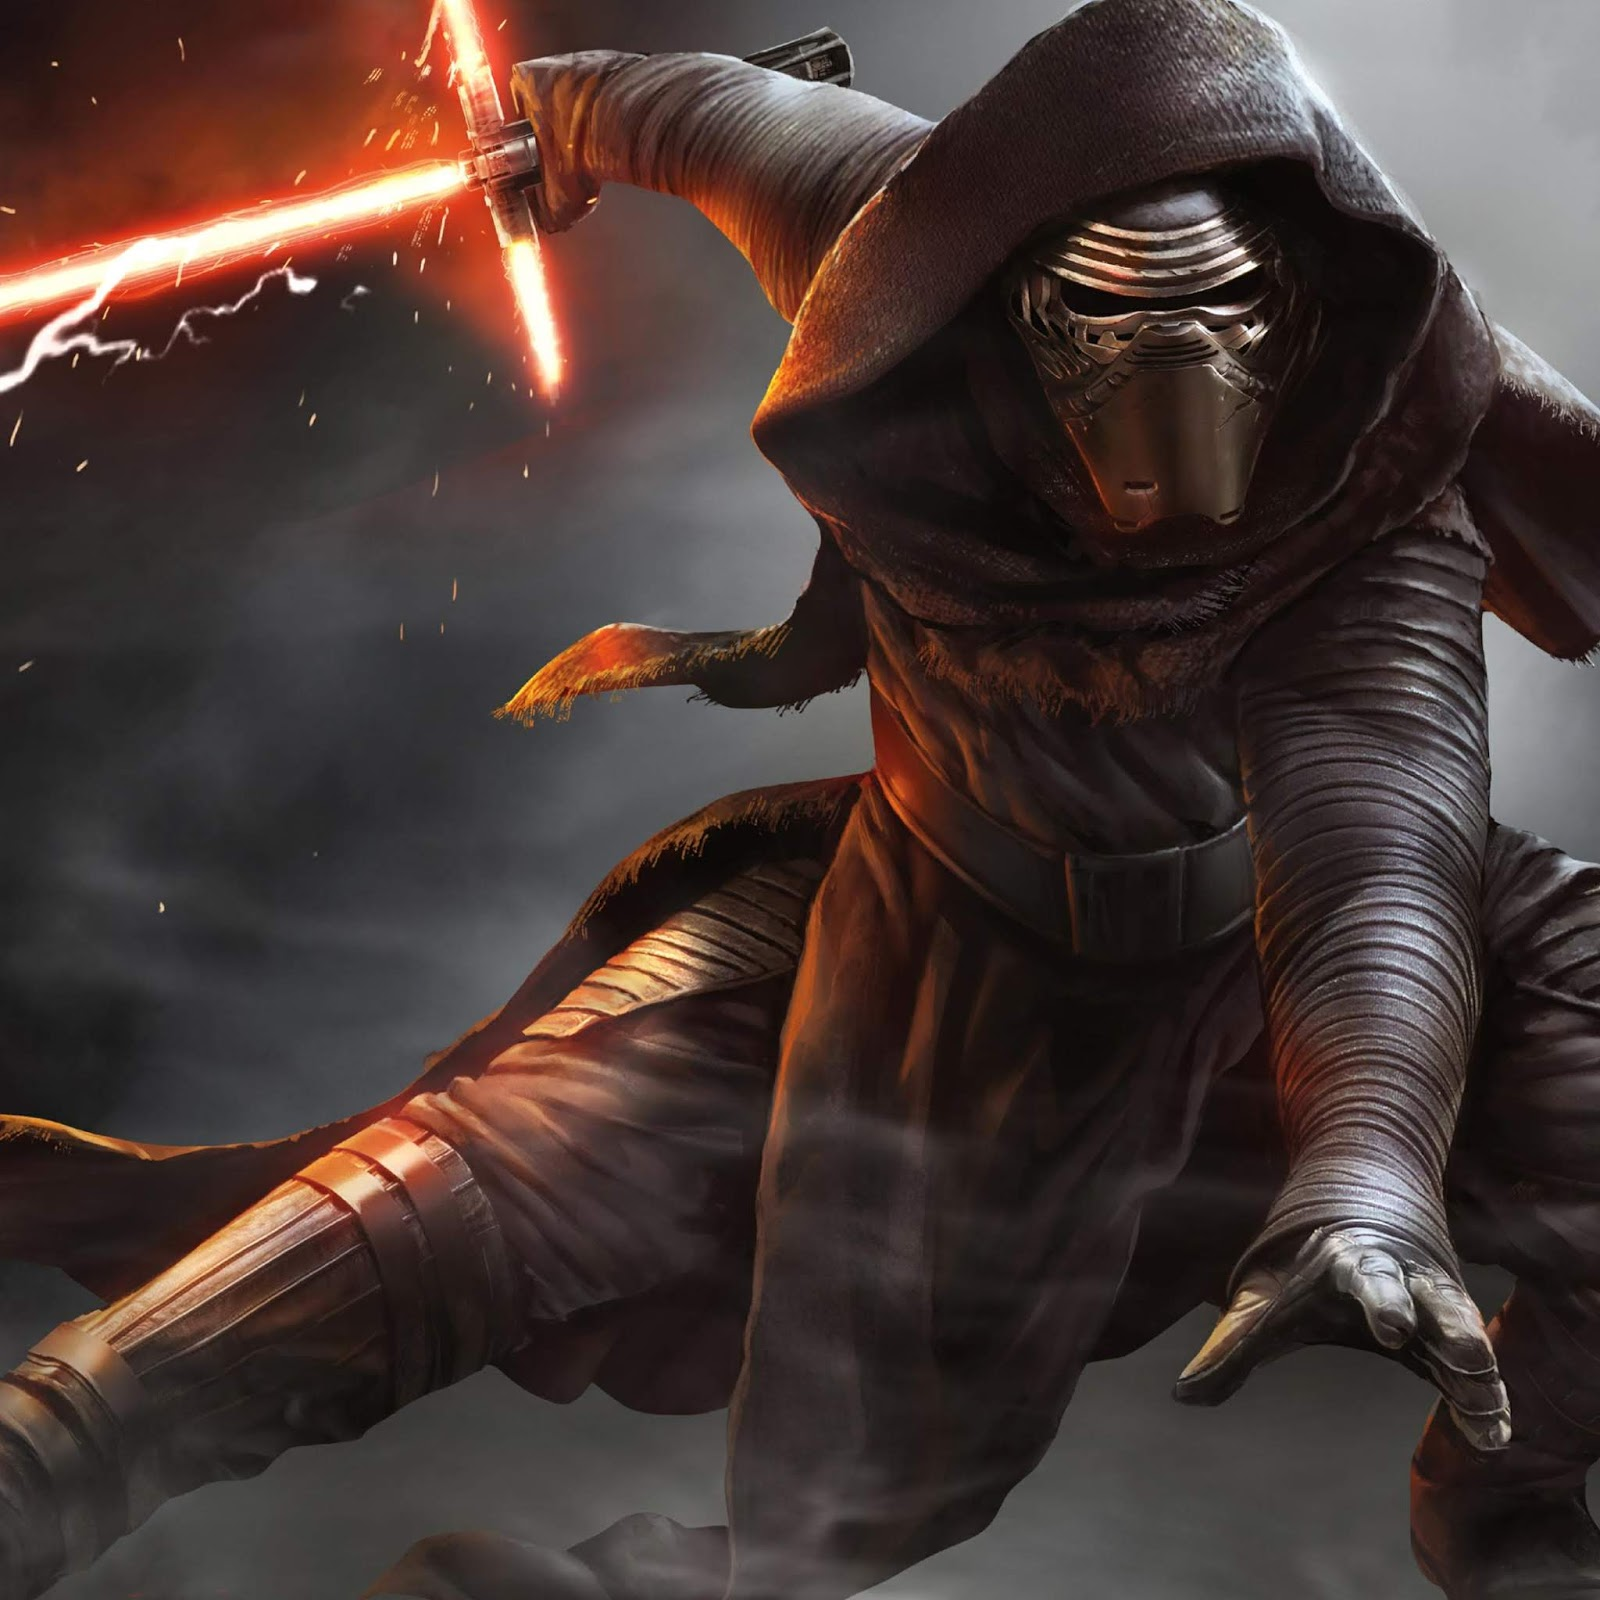 Star Wars Darth Revan Wallpaper Engine